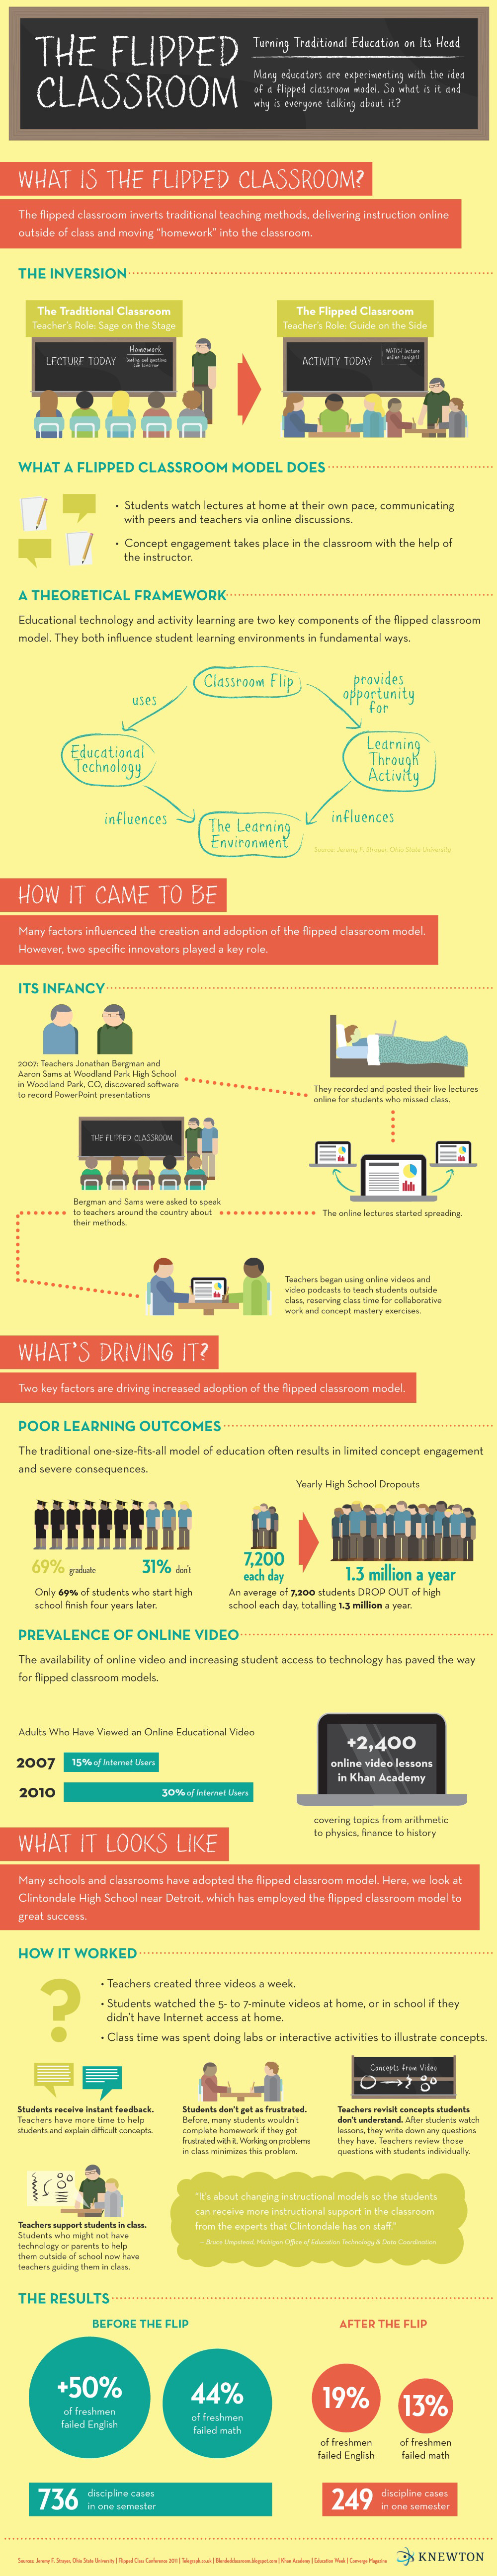 The benefits of blended learning and flipped classrooms